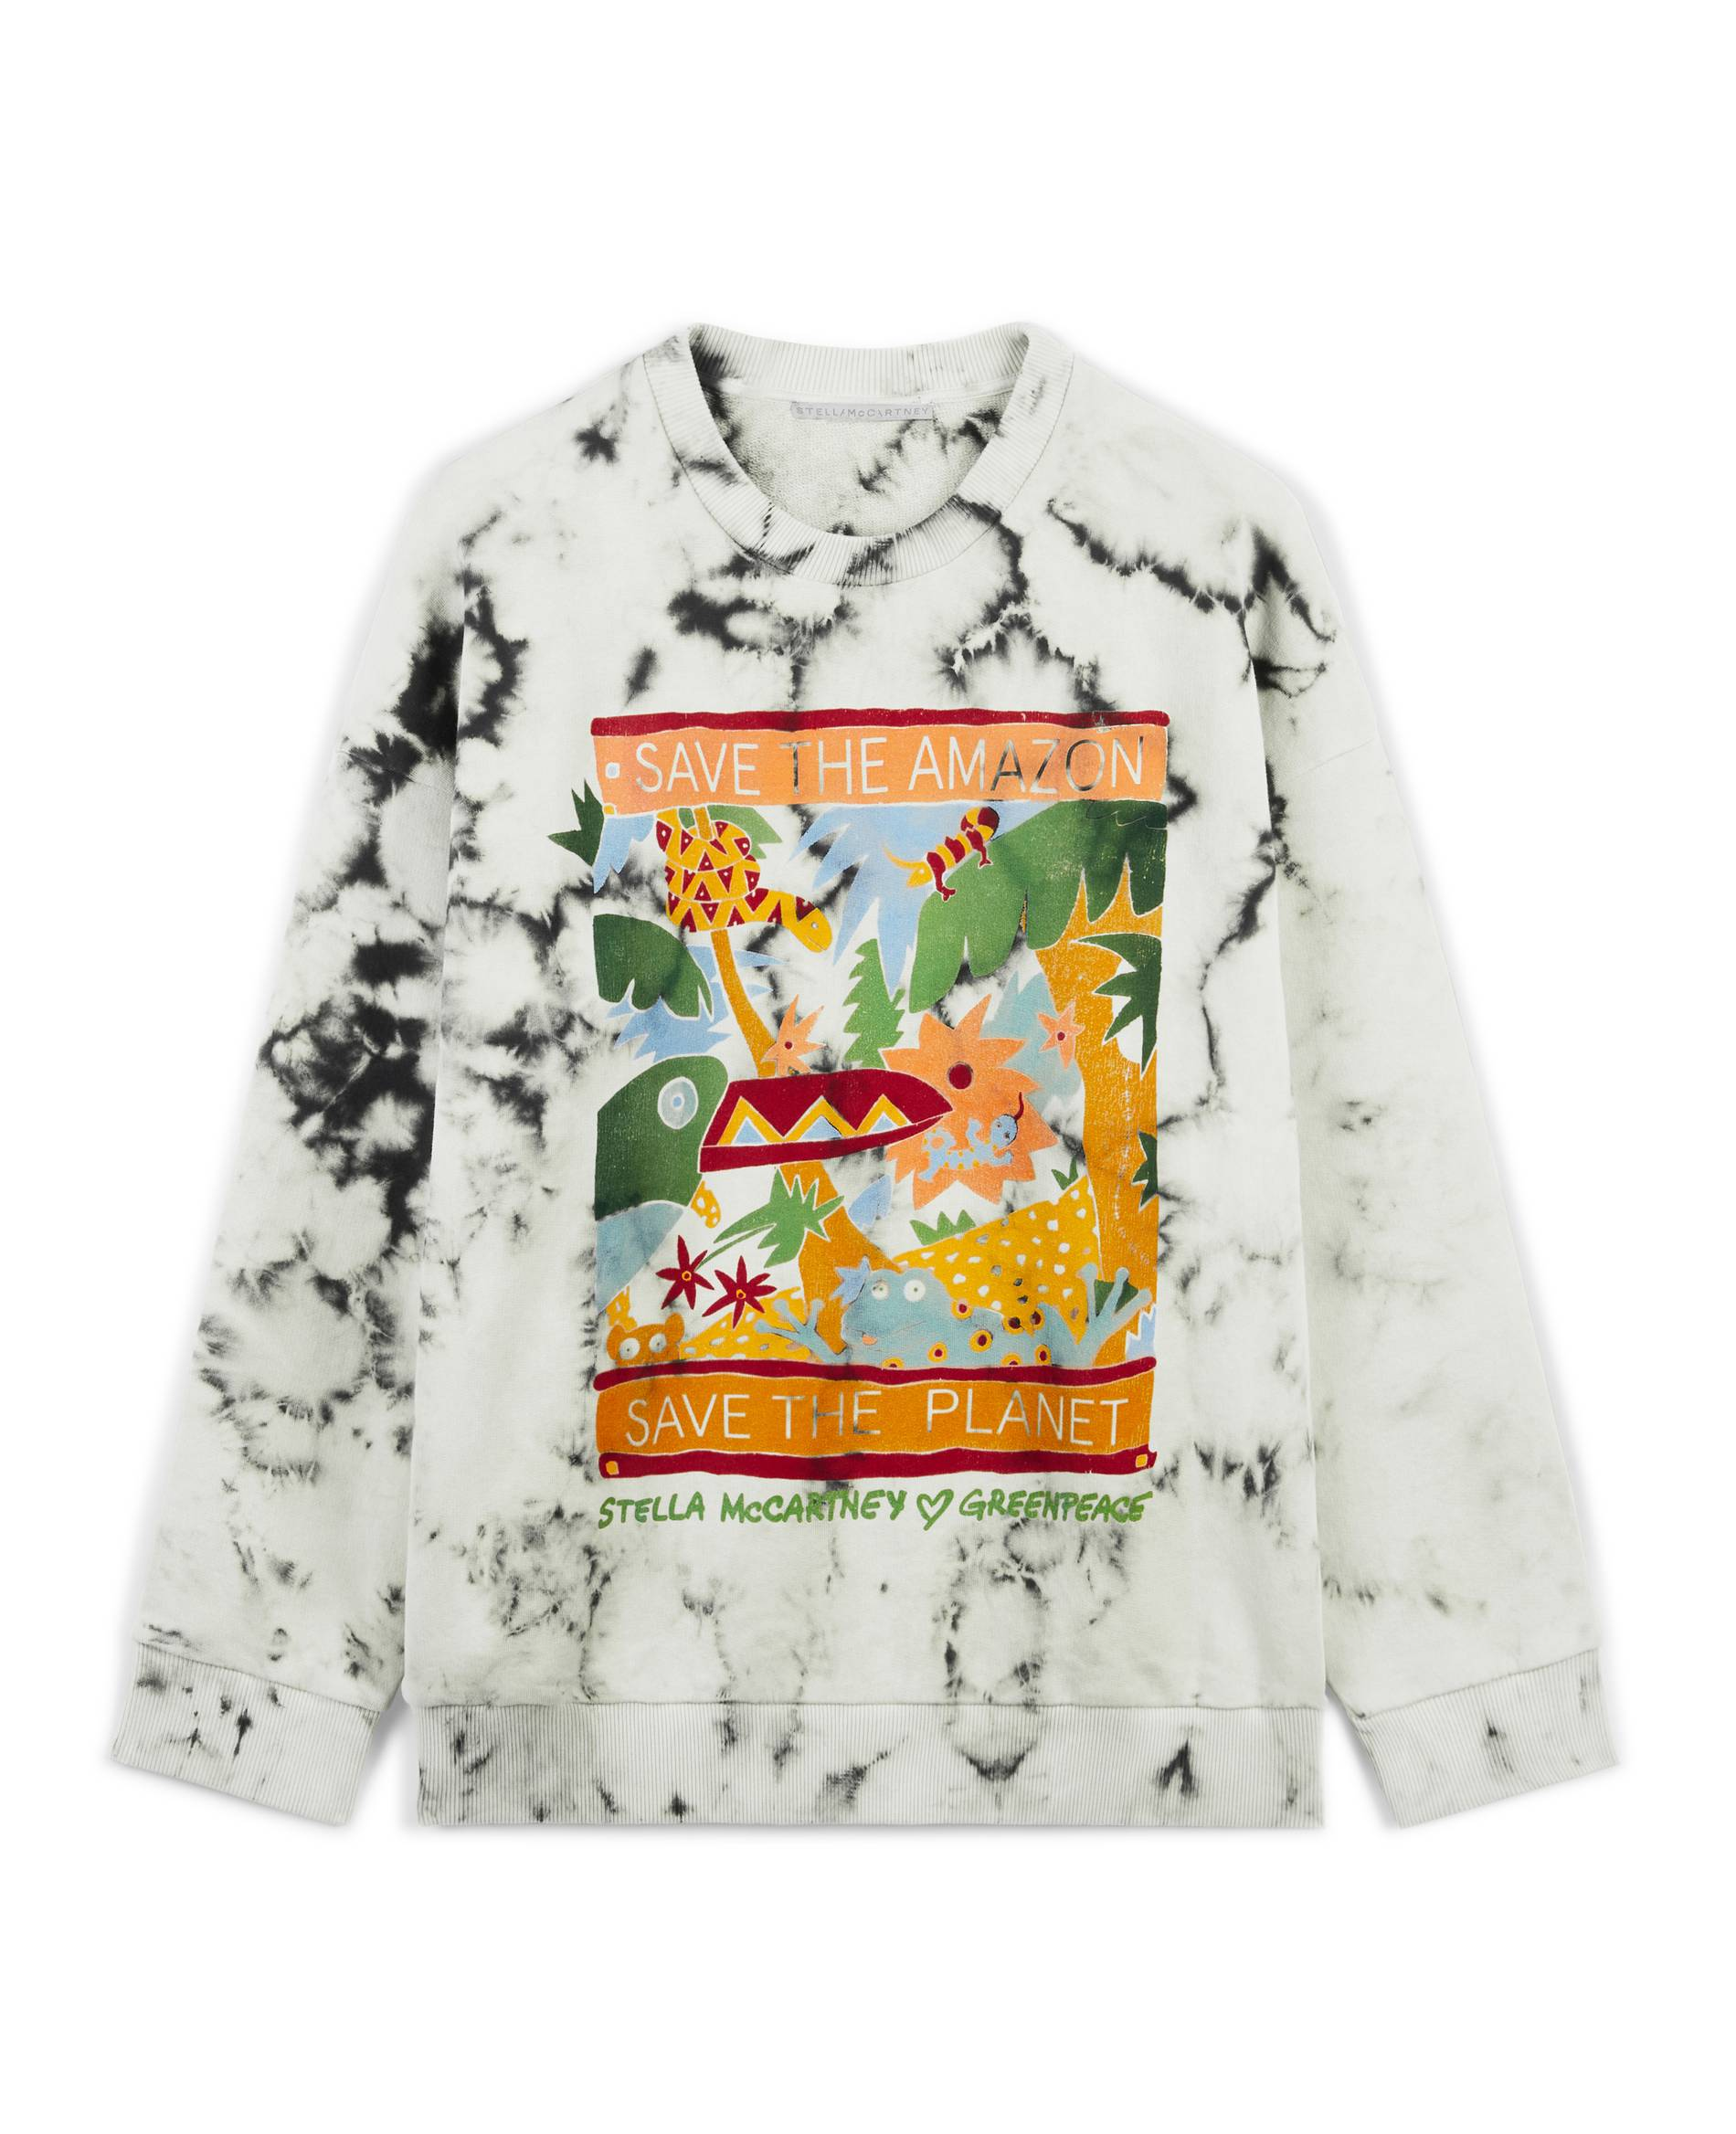 stella mccartney greenpeace capsule